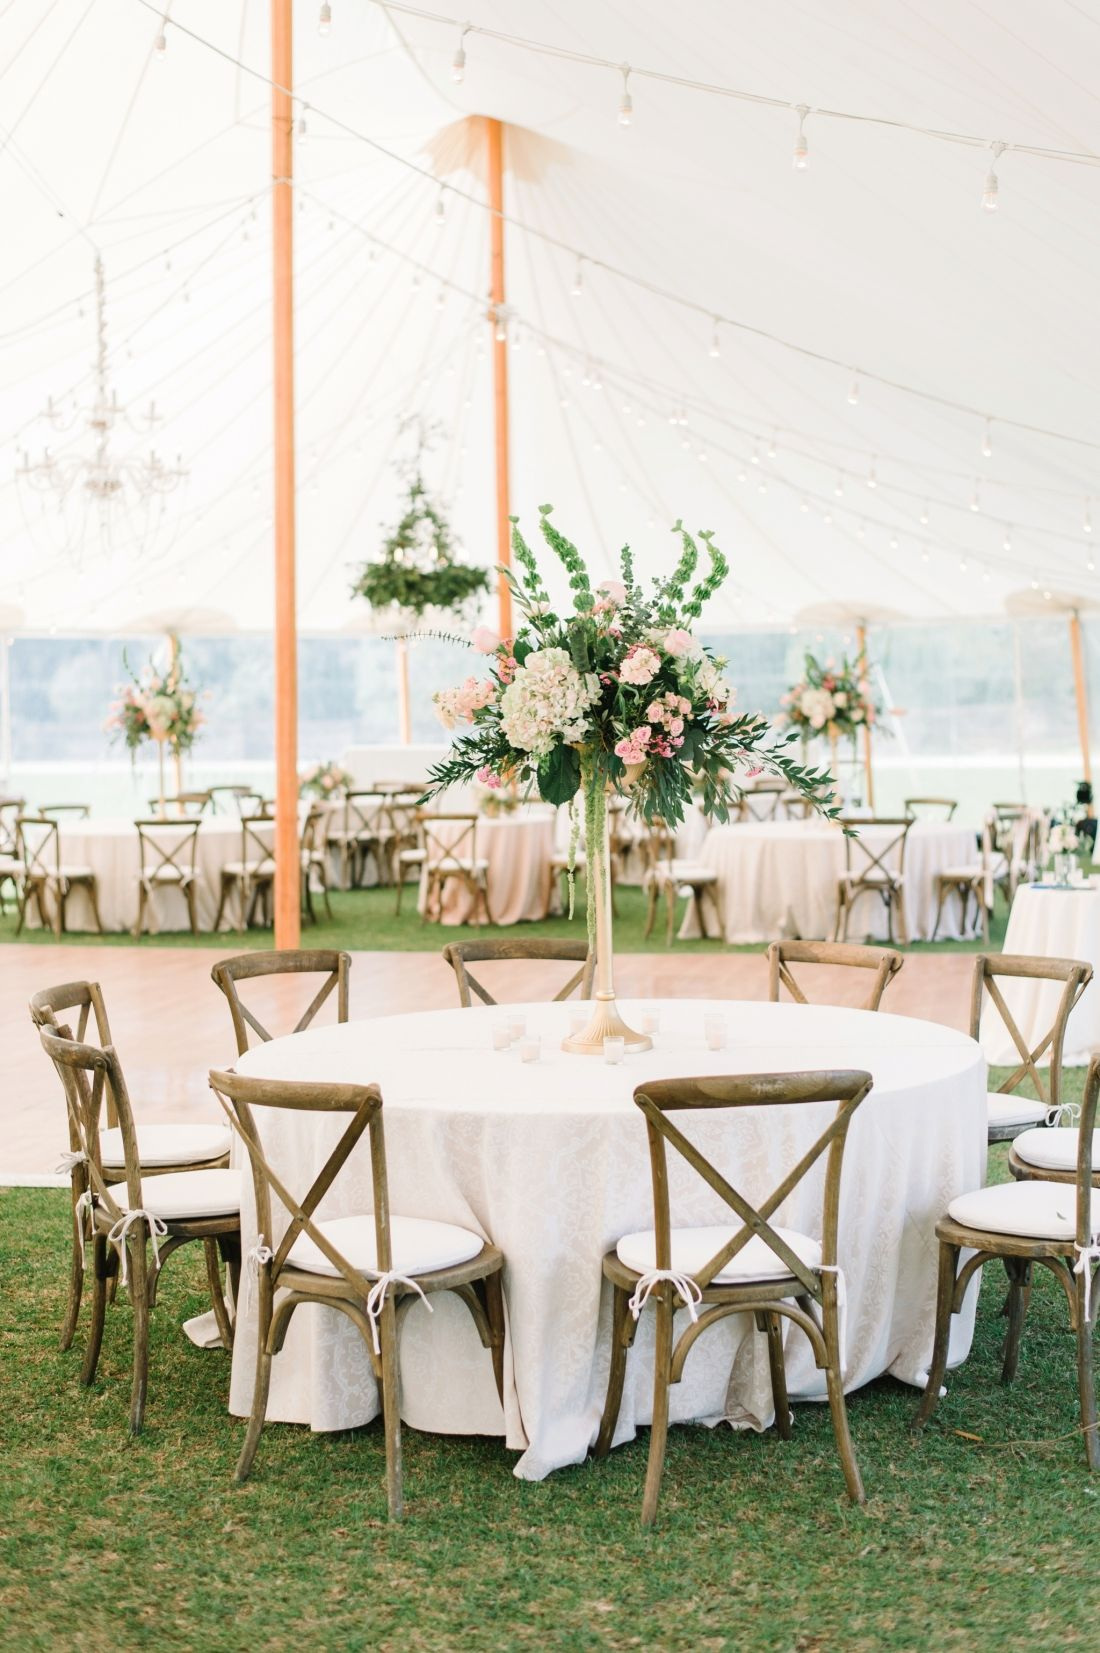 Blush, ivory, gold and green wedding reception decor at a Middleton ...